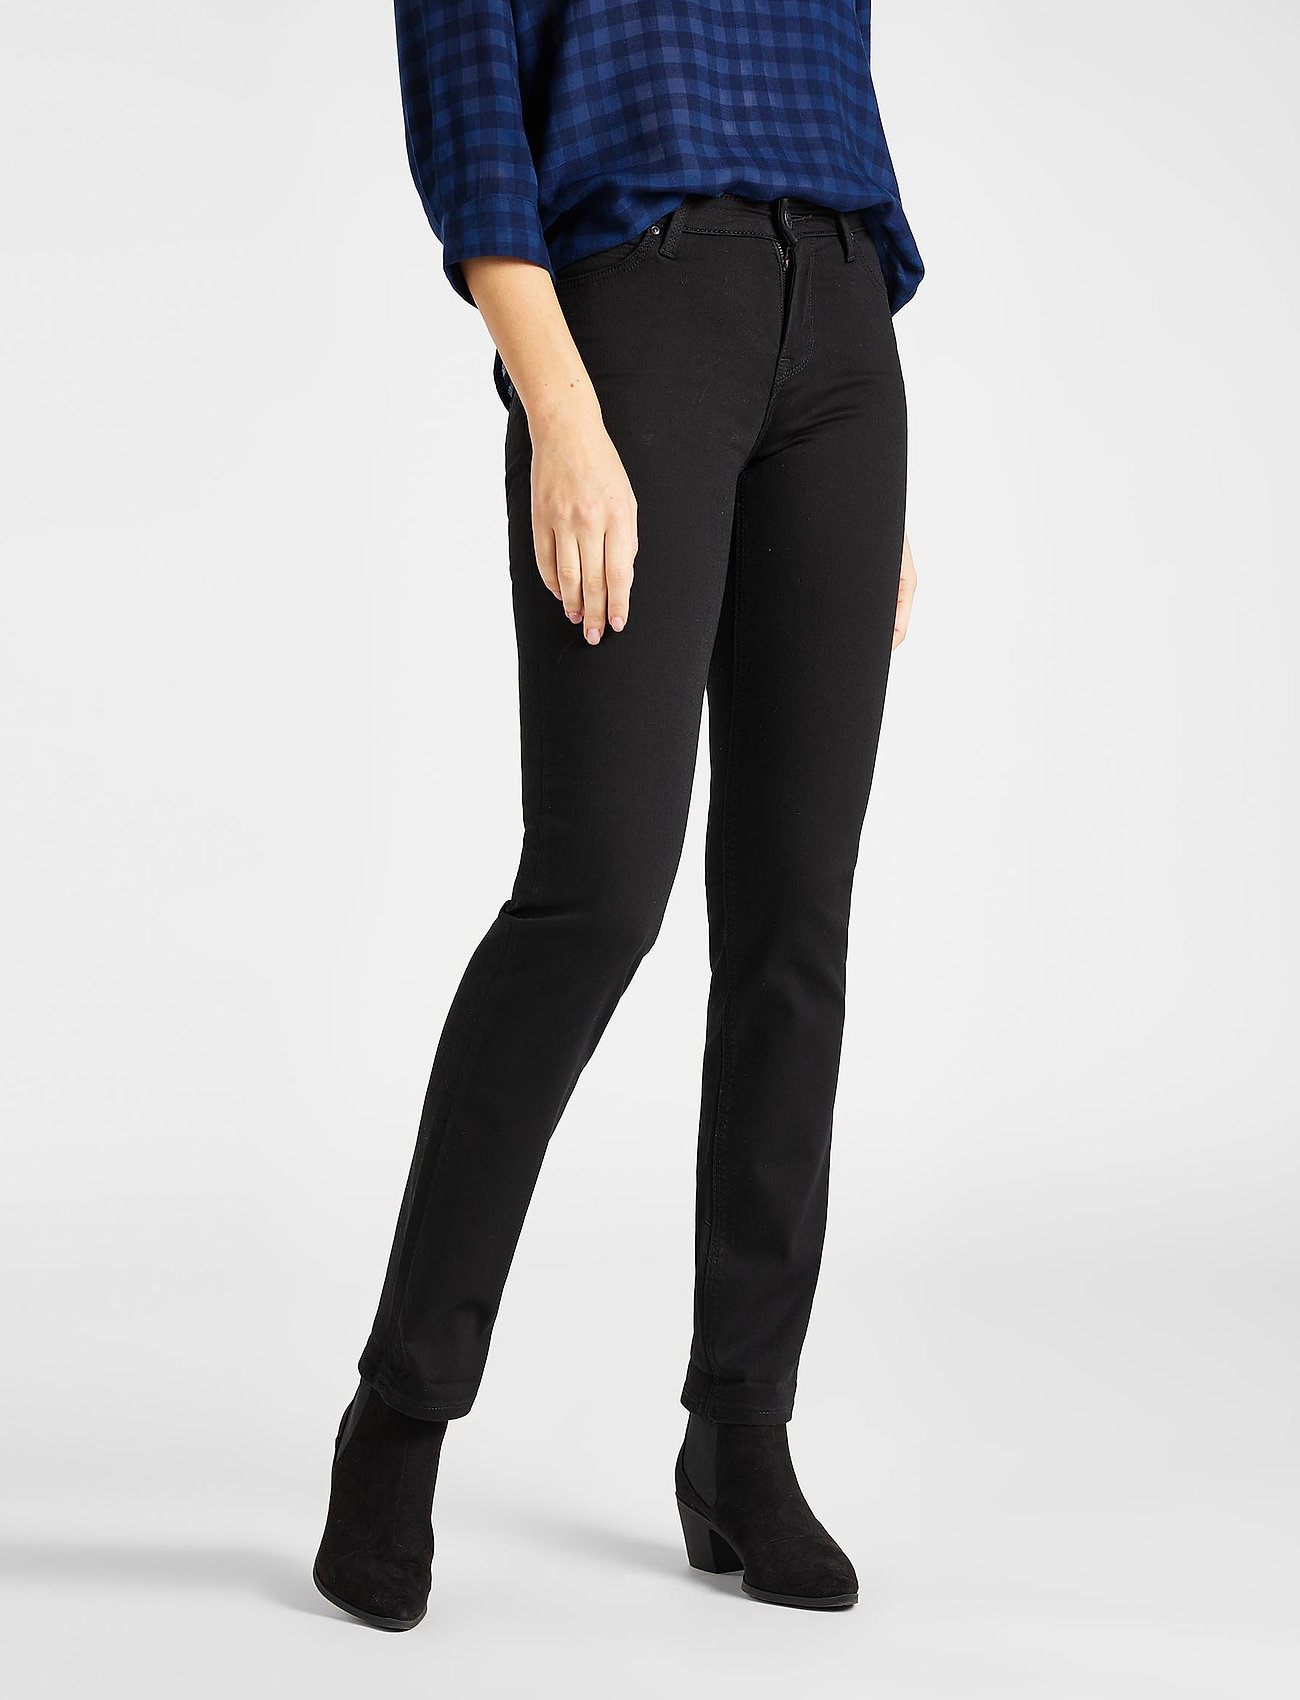 Lee Jeans - Marion Straight - straight jeans - black rinse - 0